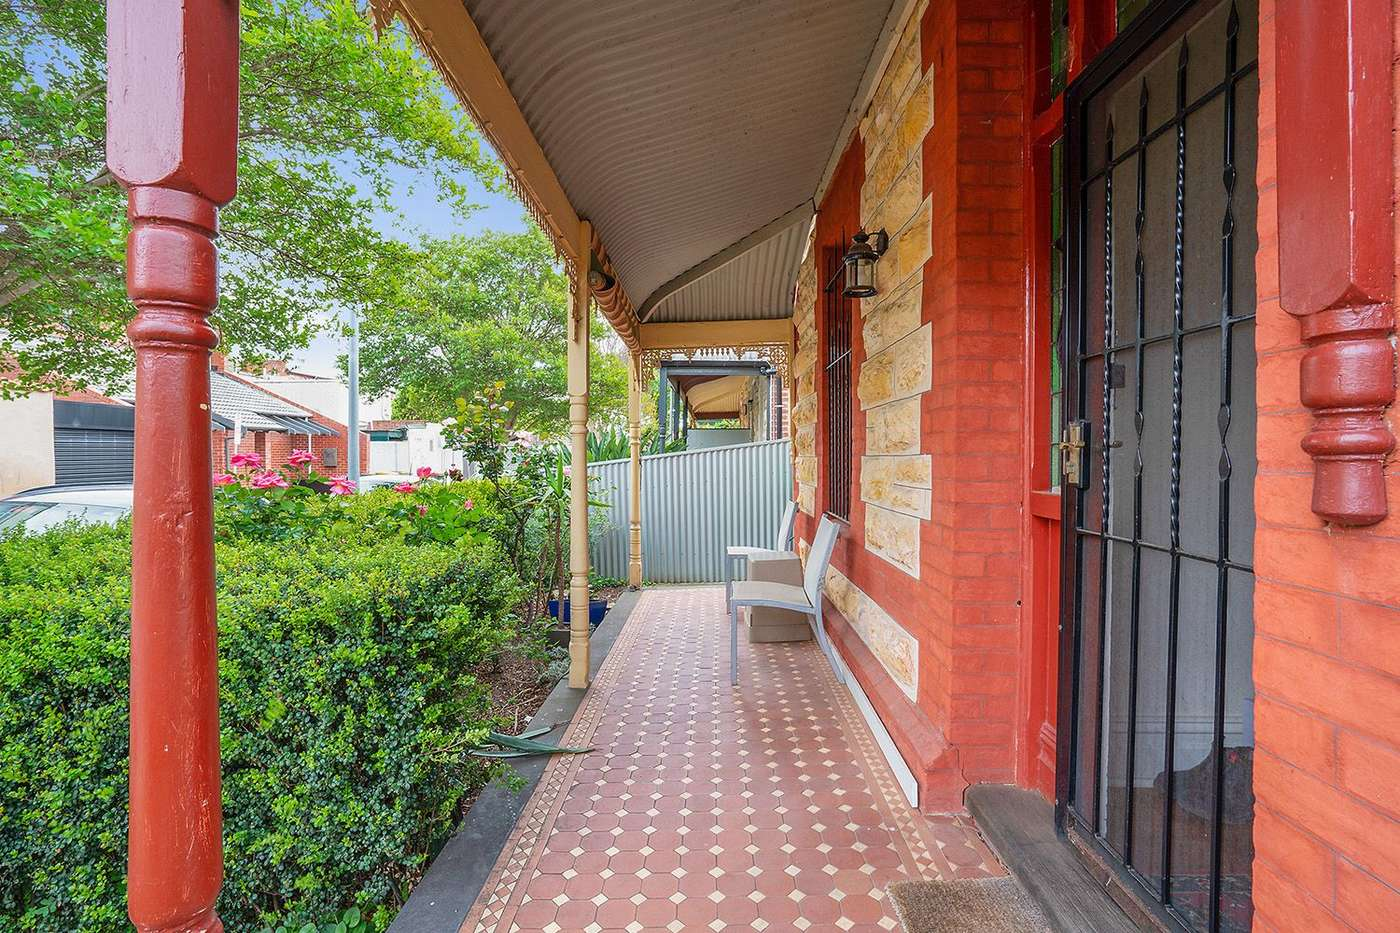 Main view of Homely house listing, 24 Corryton Street, Adelaide, SA 5000